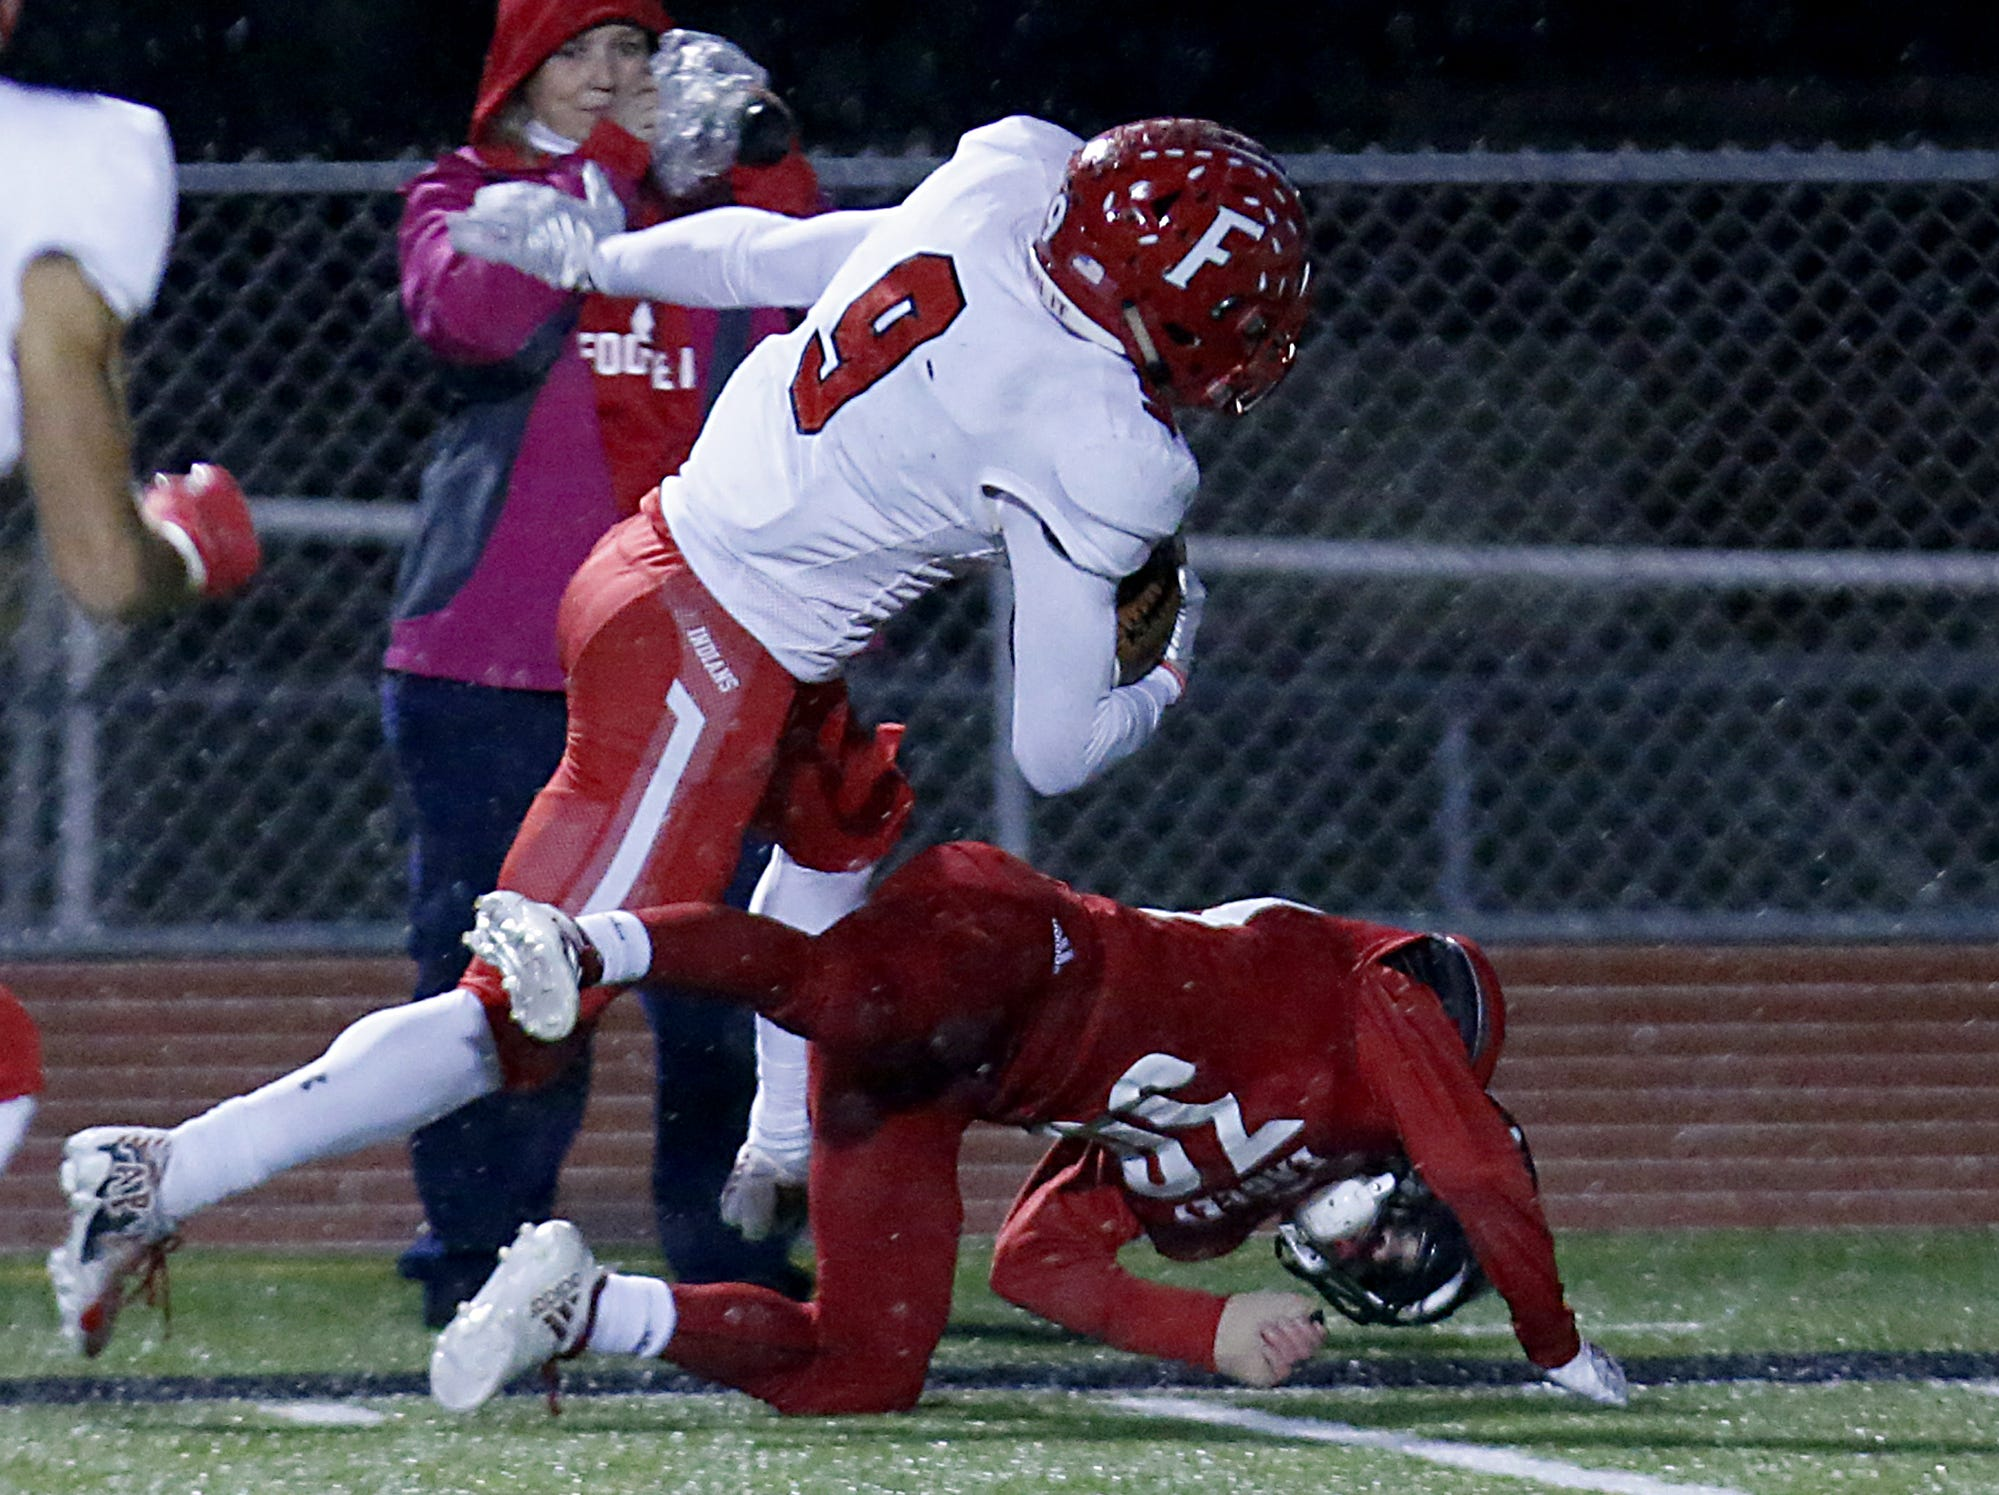 Fairfield running back Jutahn McClain is stopped at the four yard line by Milford defensive back Max Ward during their Division I playoff game at Eagle Stadium in Milford Friday, Nov. 2, 2018.